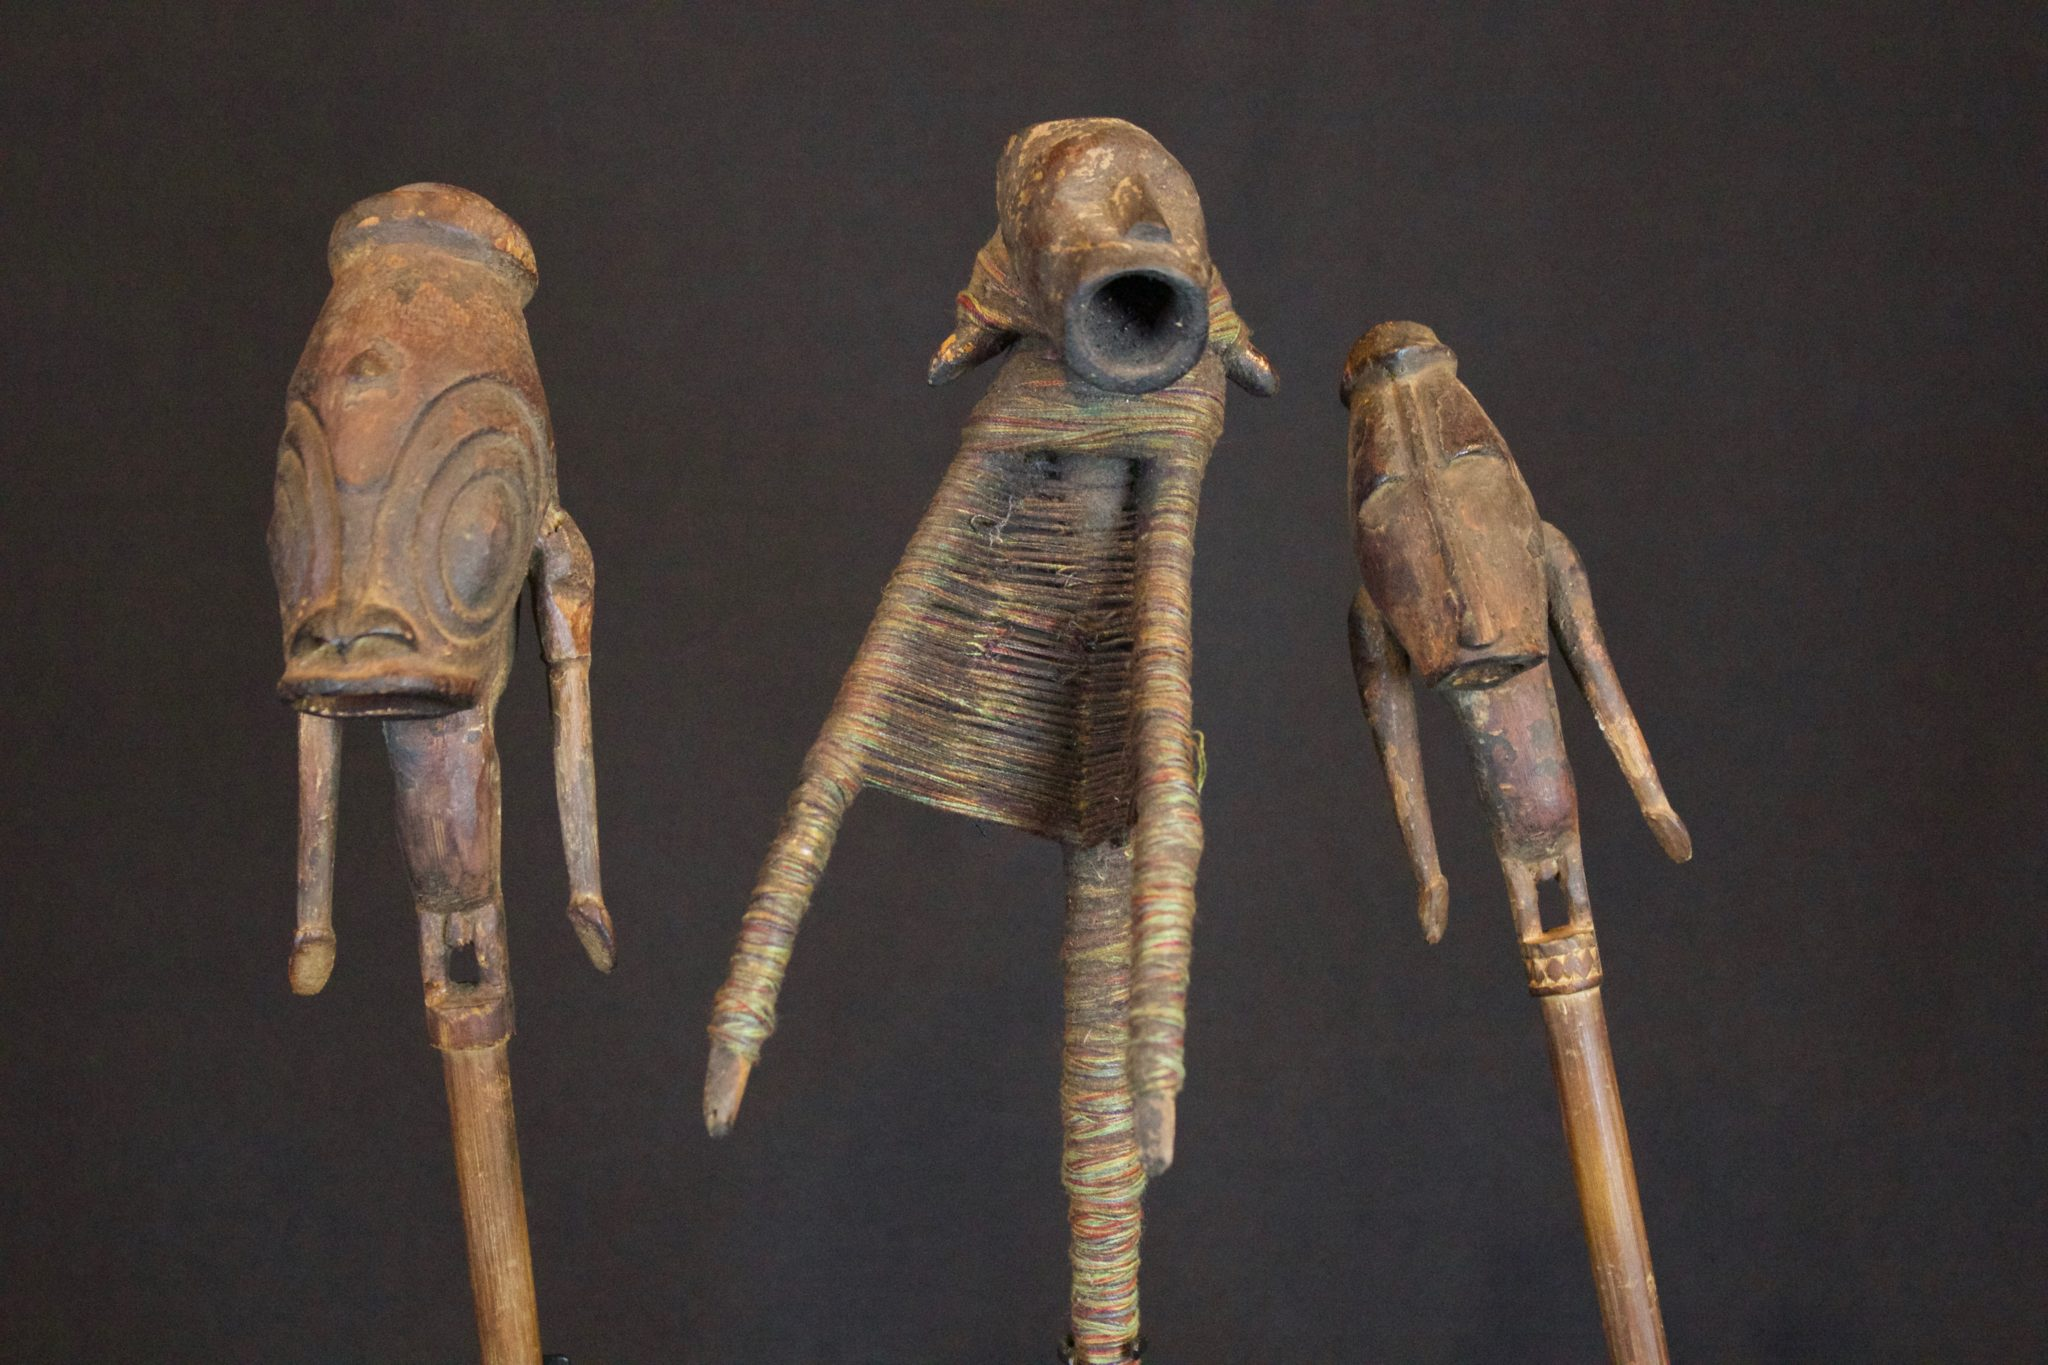 "Shaman Talisman Figure, Papúa New Guinea, Indonesia, Early 20th c, Wood. Used in ritual ceremonies to stop rain. (Figure on right - 12 ½"" x 2"" x 2 ½"", Sold)"